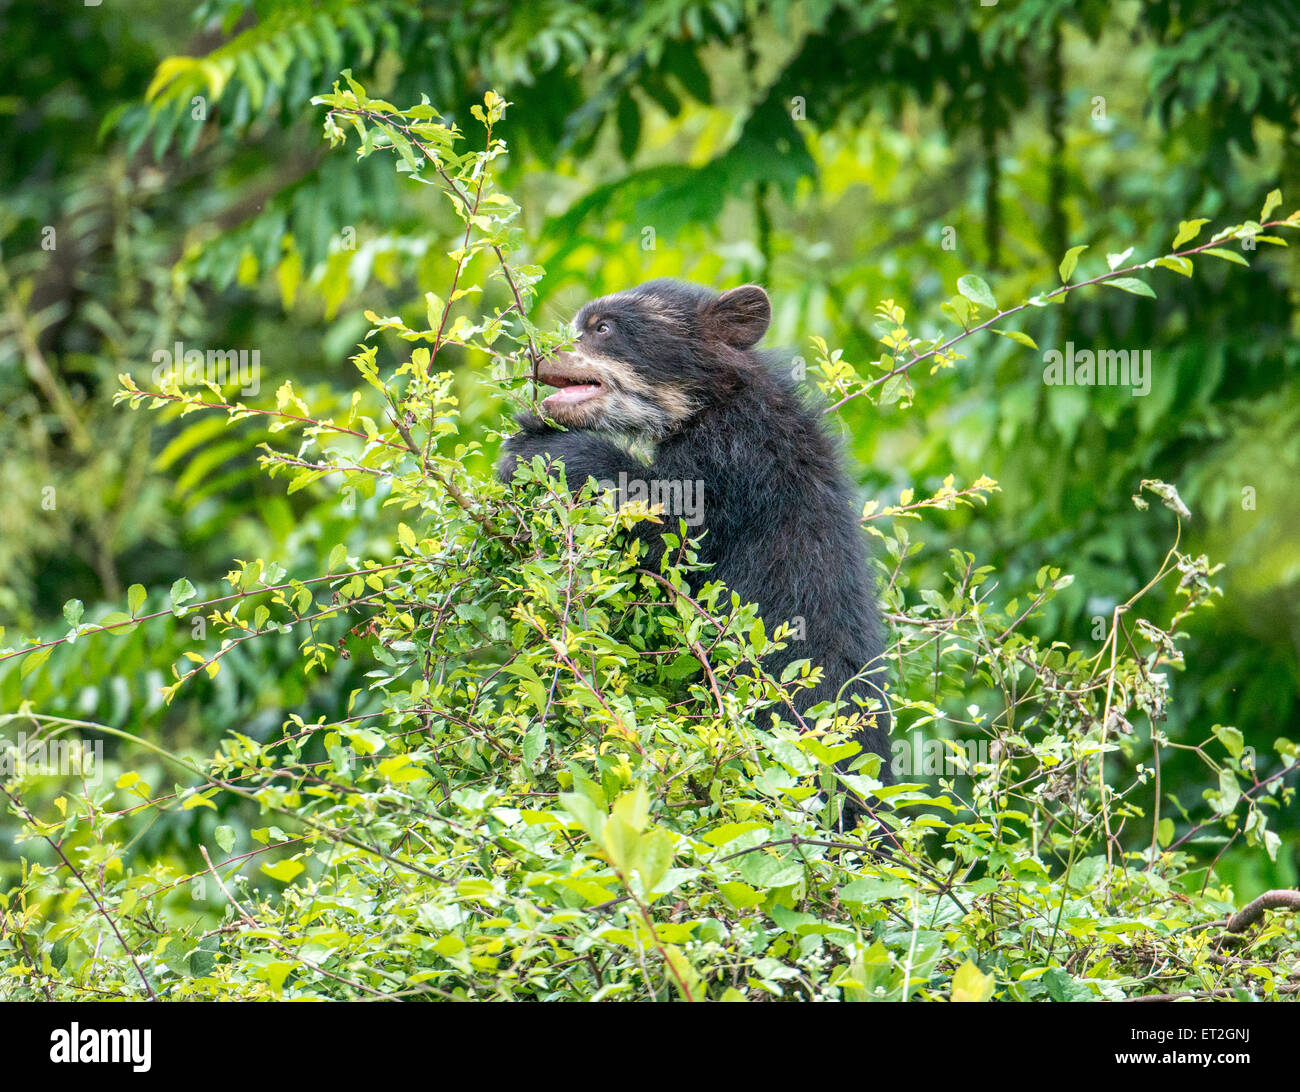 Spectacled bear cub in treetop - Stock Image